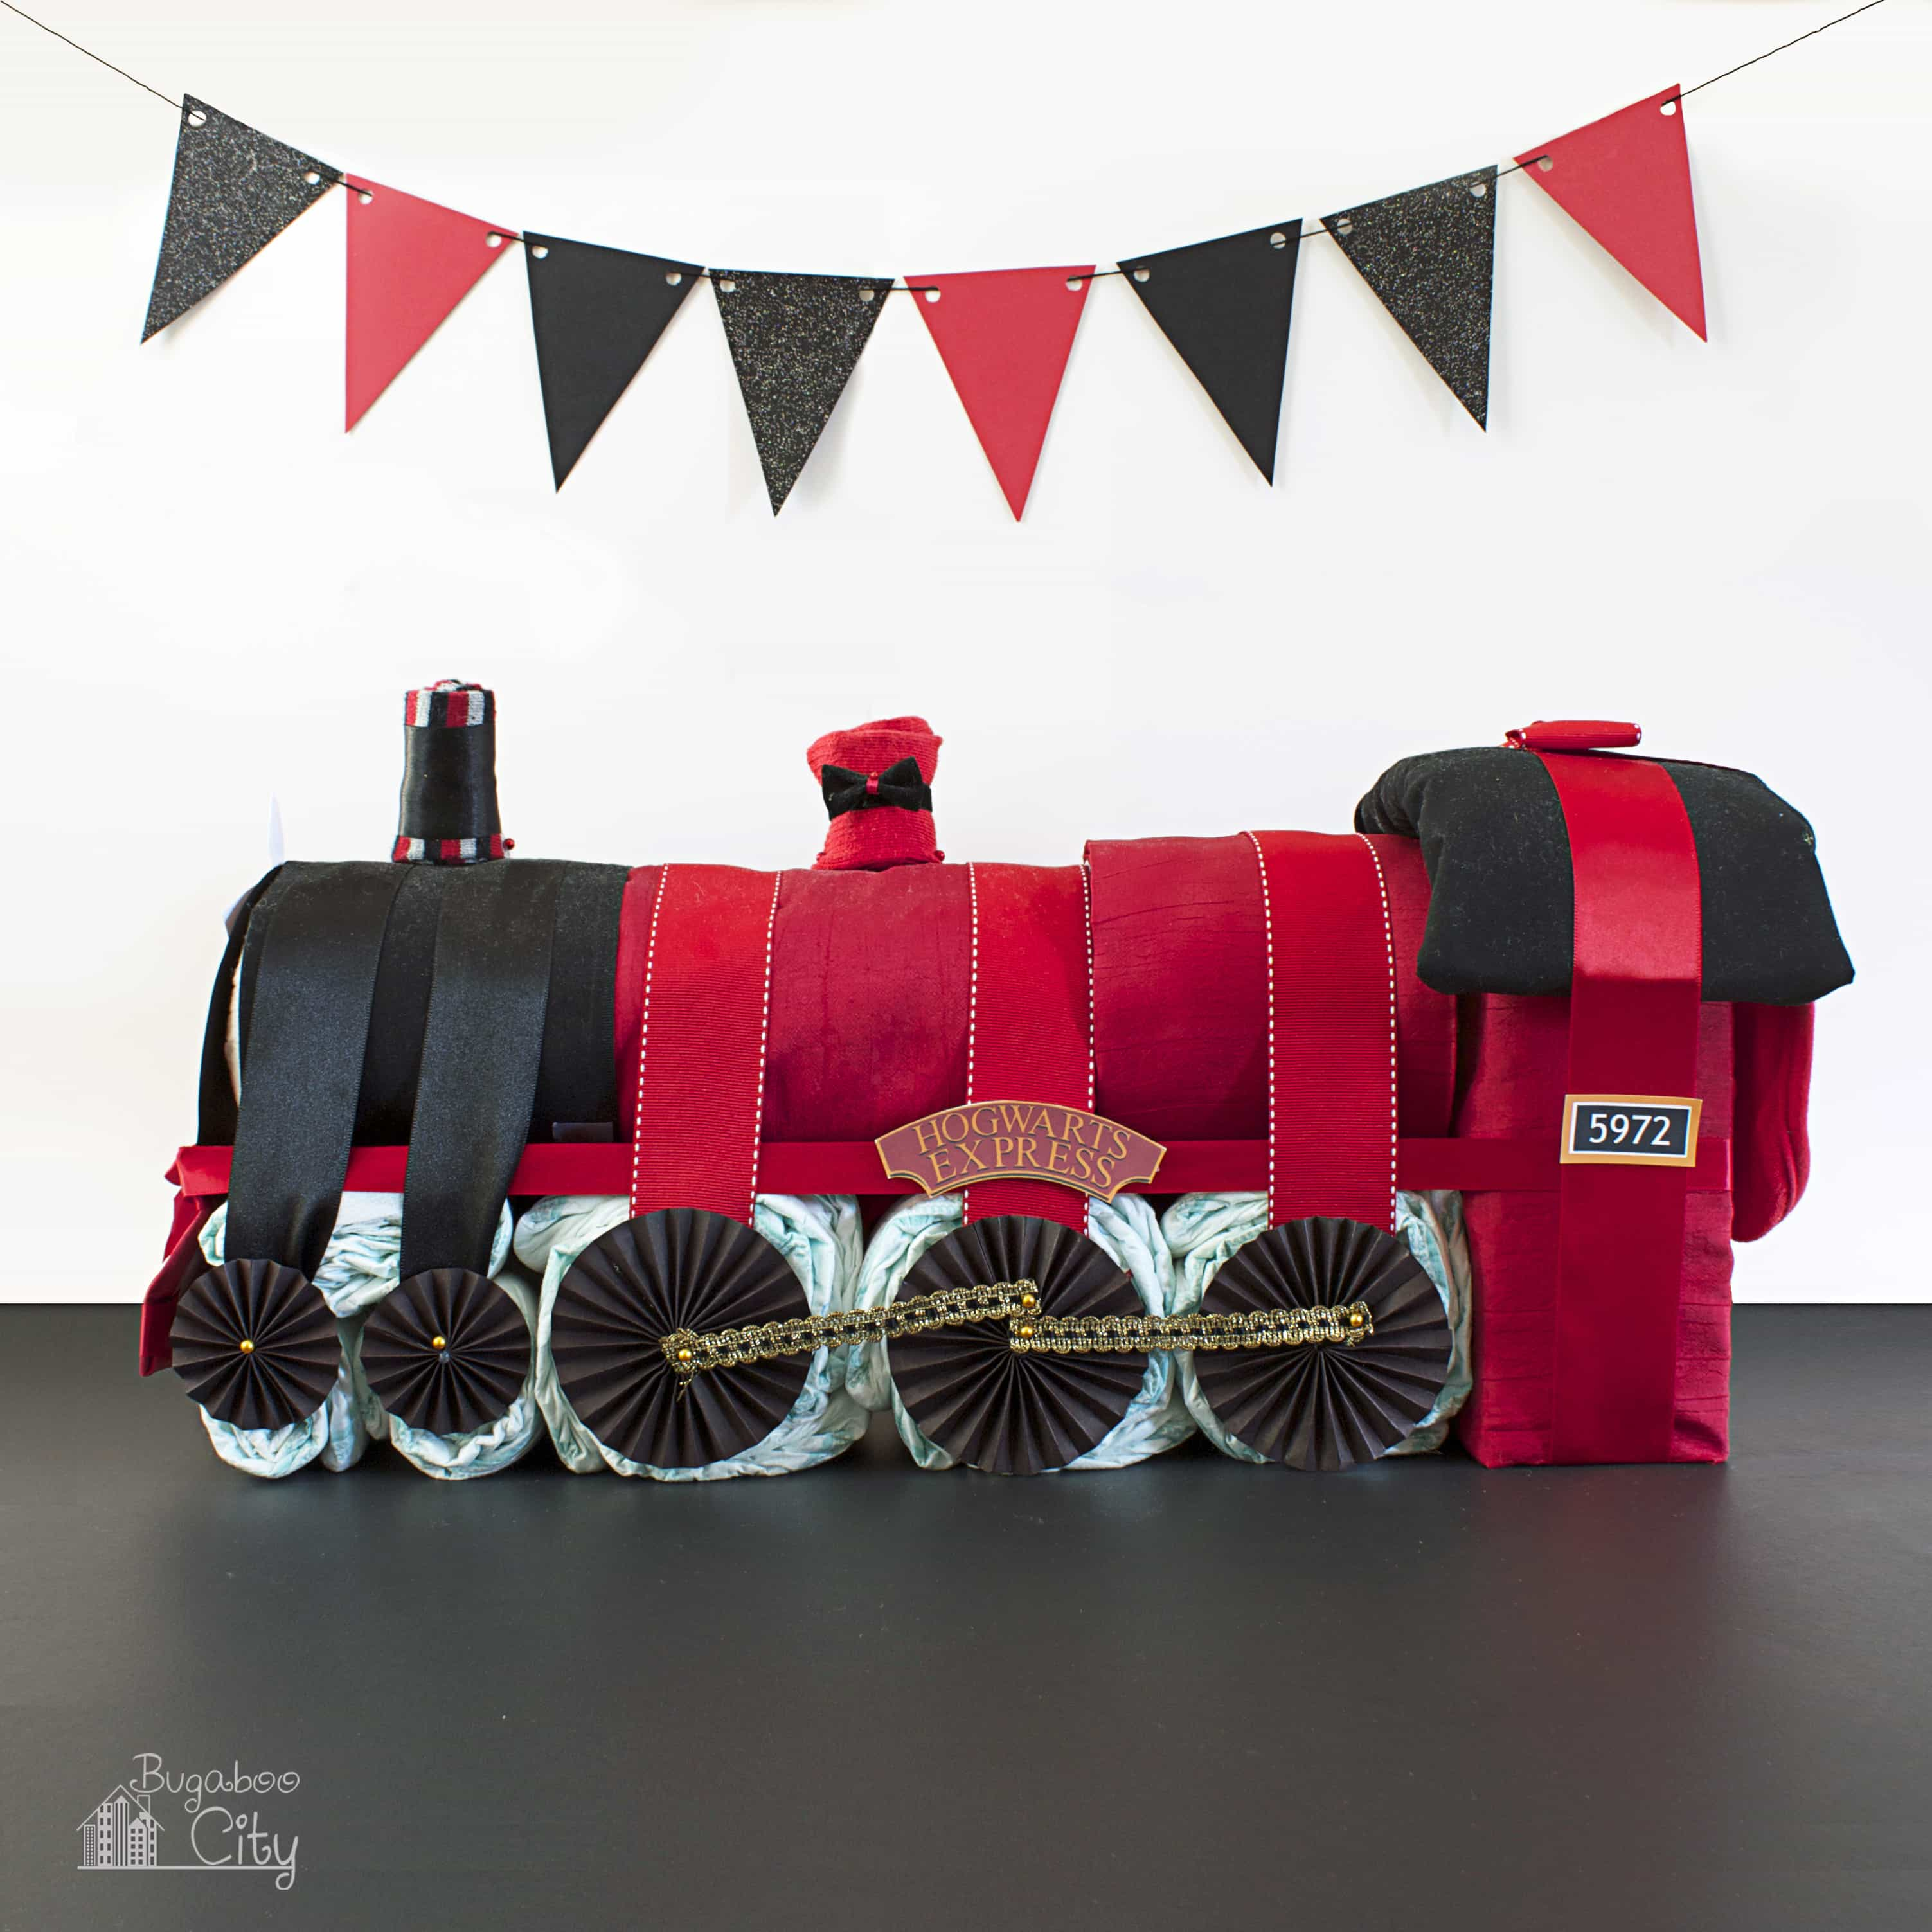 Hogwarts Express Diaper Cake witha red and black paper banner hanging behind it.